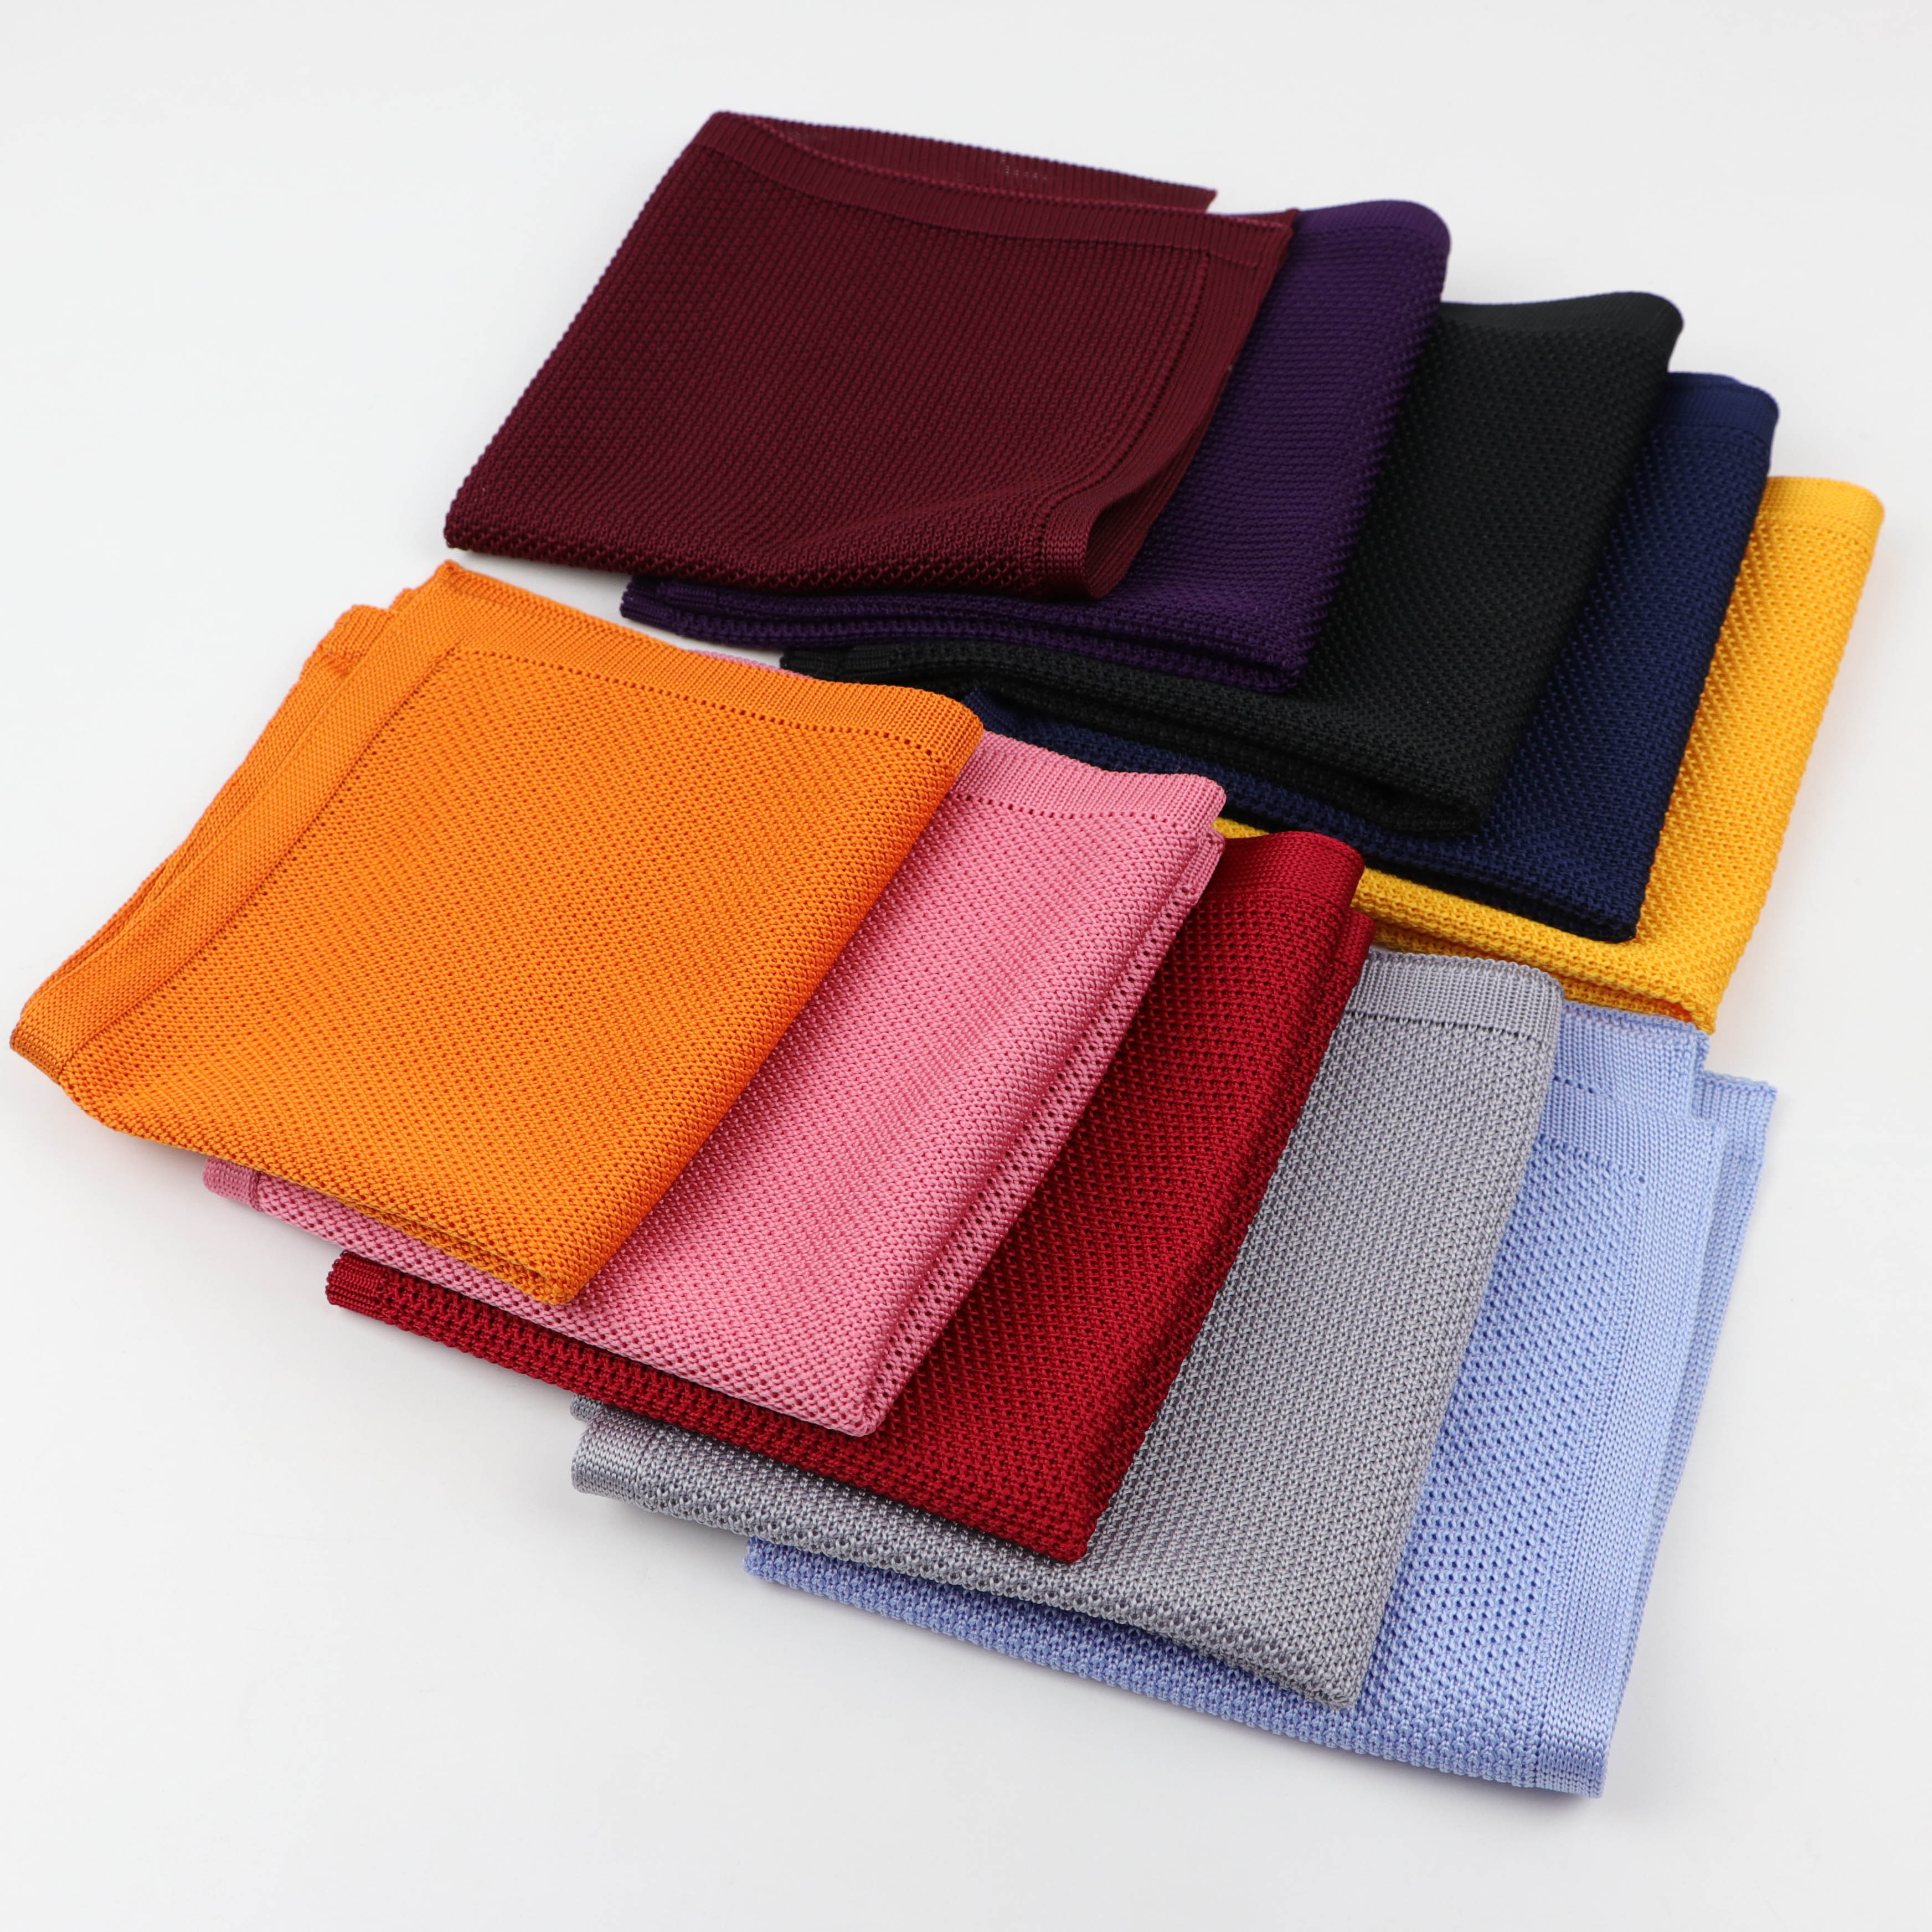 High Quantity Solid Color Knitted Hankerchief Scarves Soft Fabric Woven Hankies Men's Pocket Square Knit Handkerchiefs